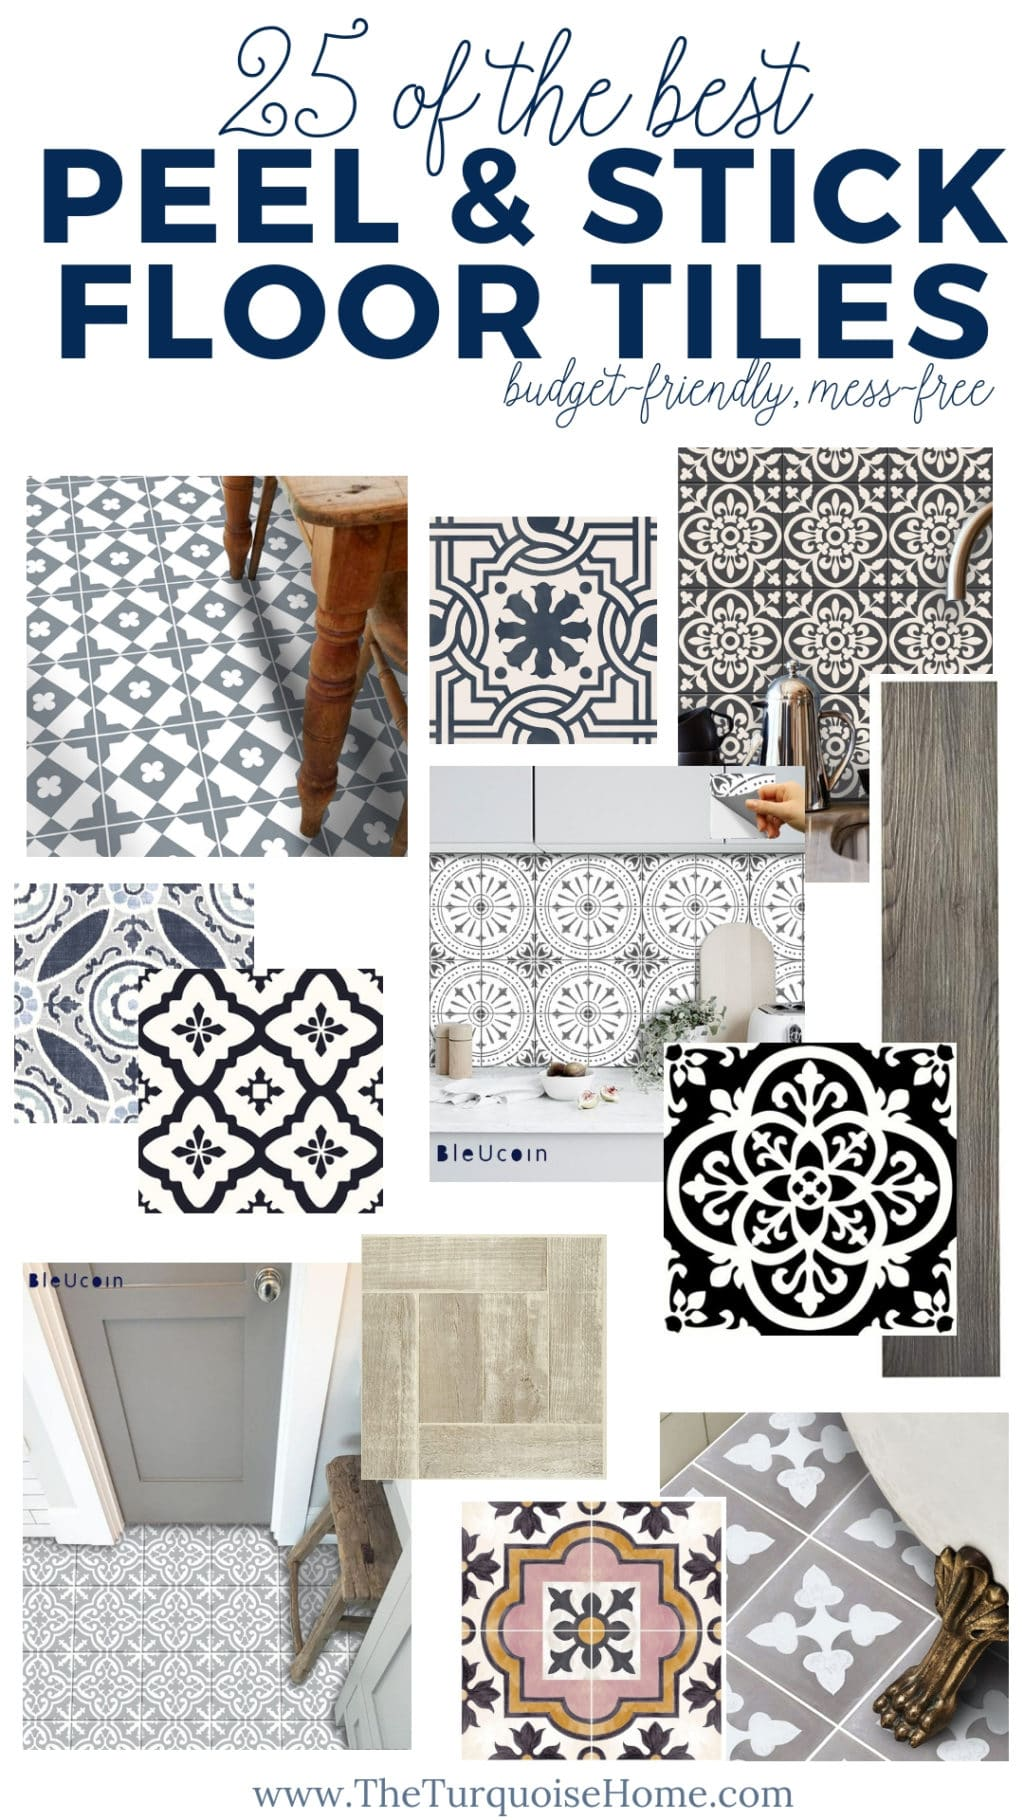 The Best Peel and Stick Floor Tile Ideas  The Turquoise Home